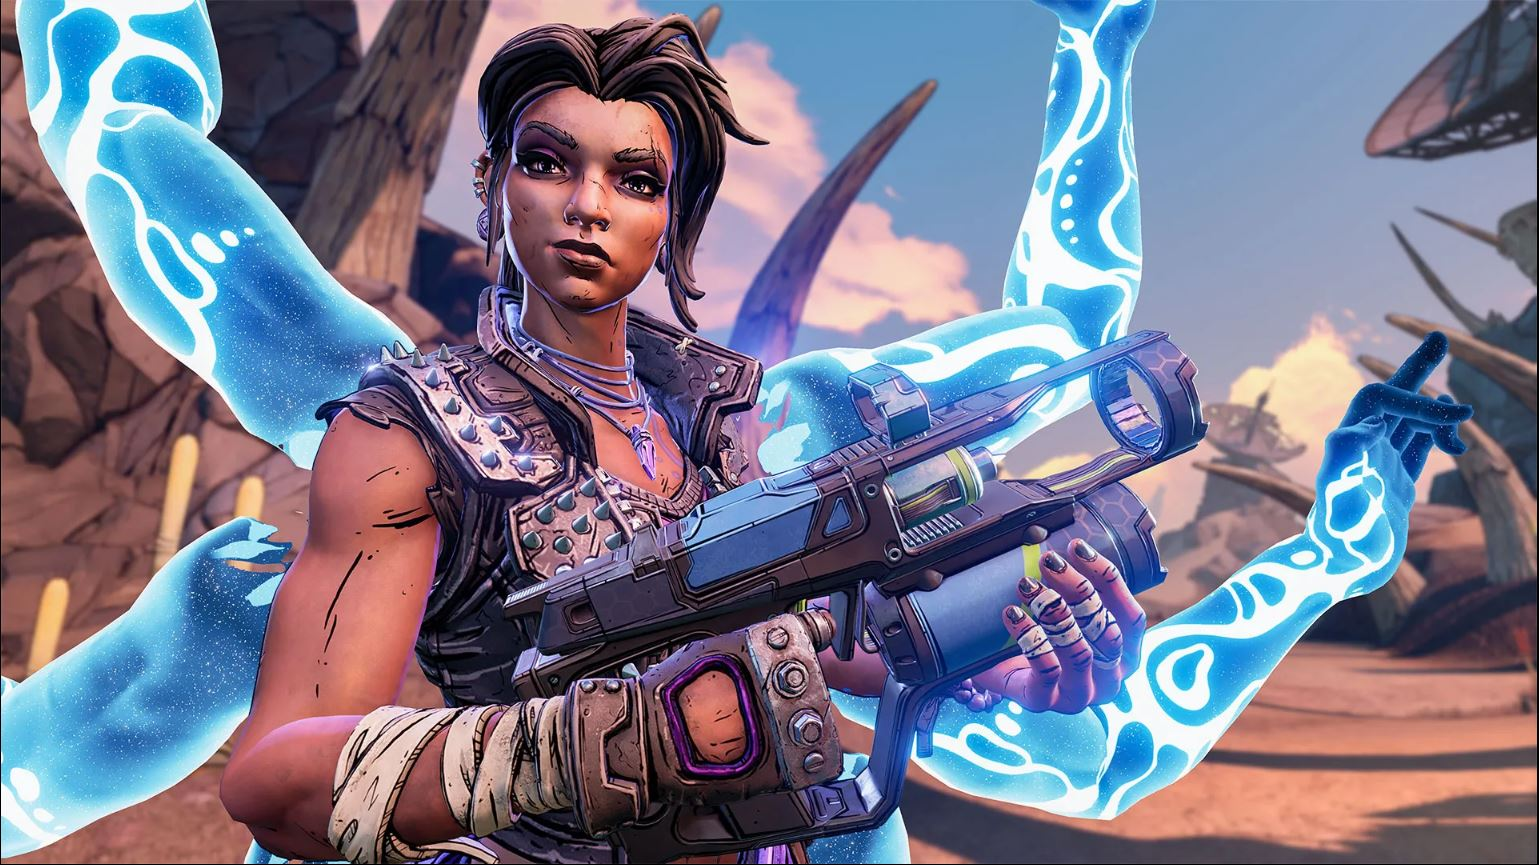 Borderlands 3 free weekend is live on Steam, PS4 and Xbox One thumbnail